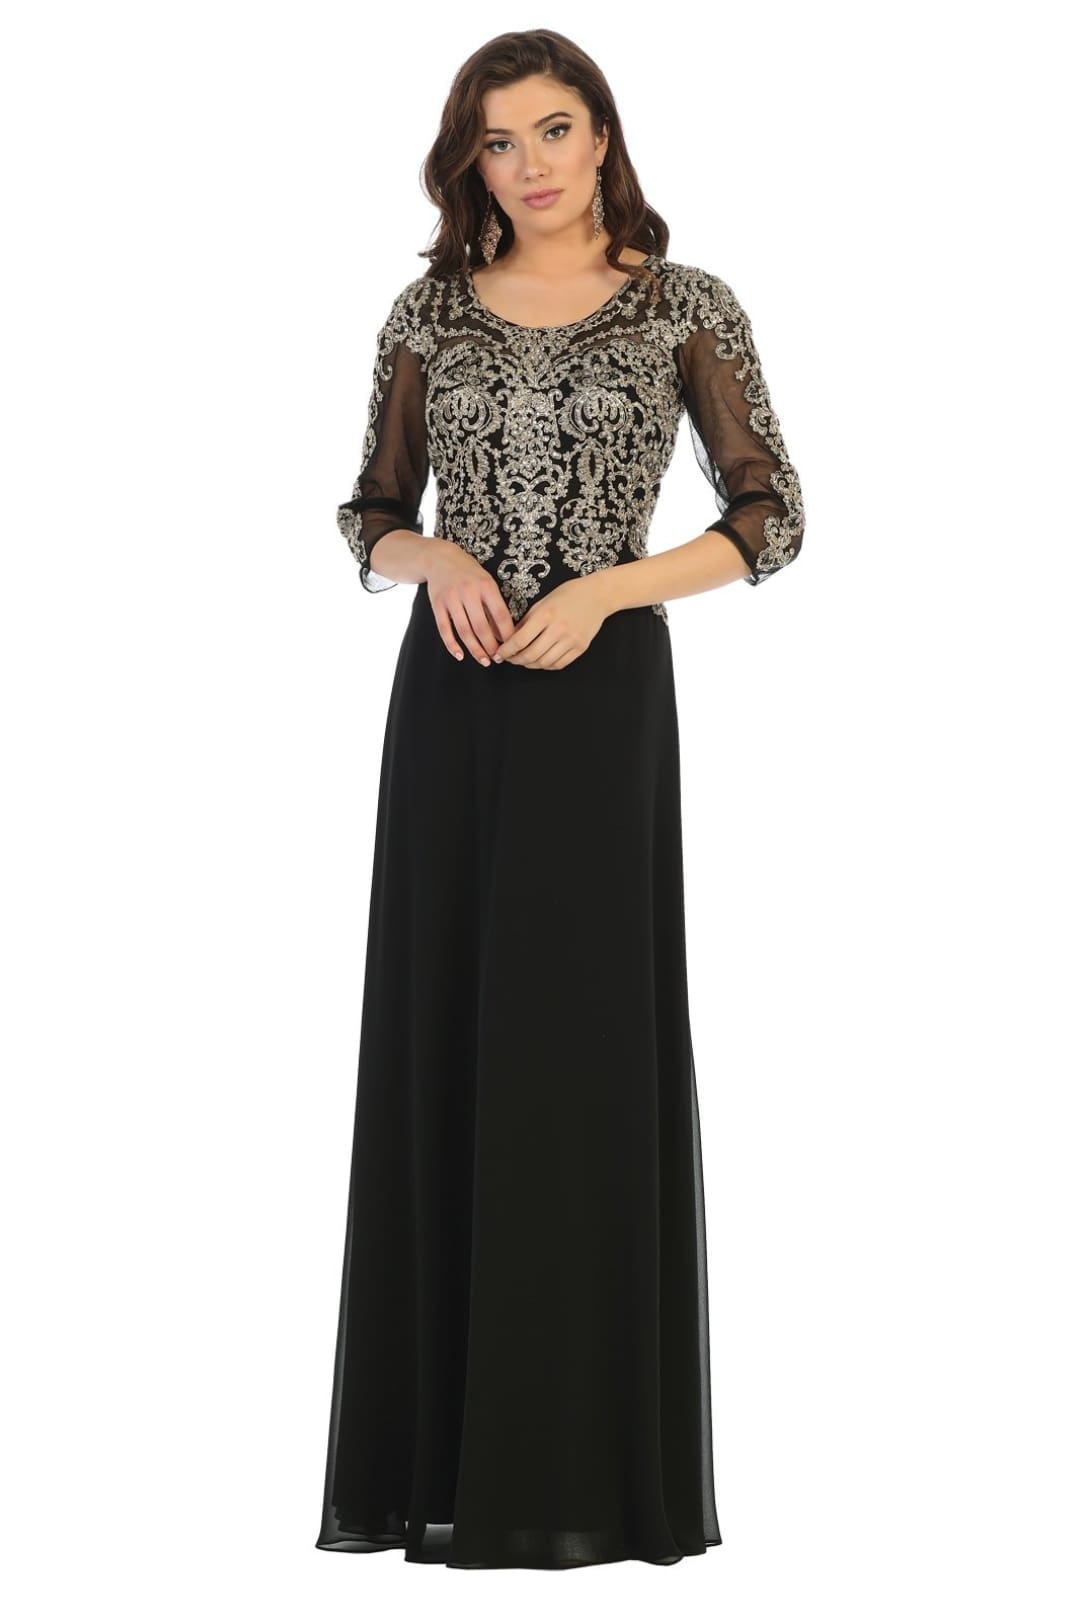 Mother Of The Bride Lace Gown - Black/Gold / M